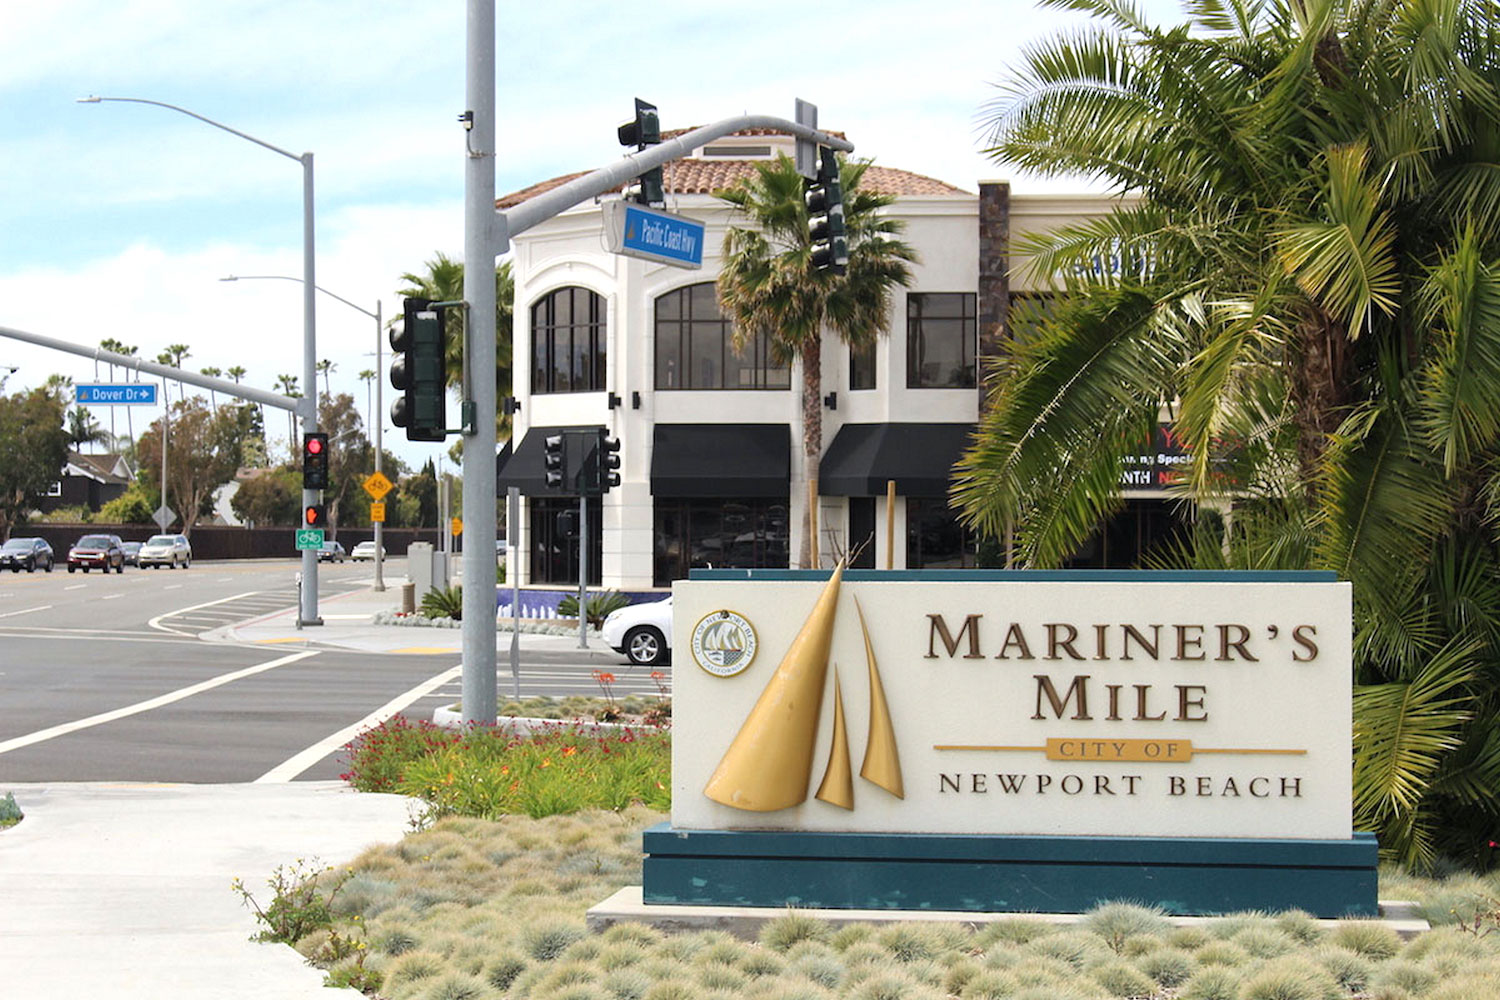 Council Mariners' Mile